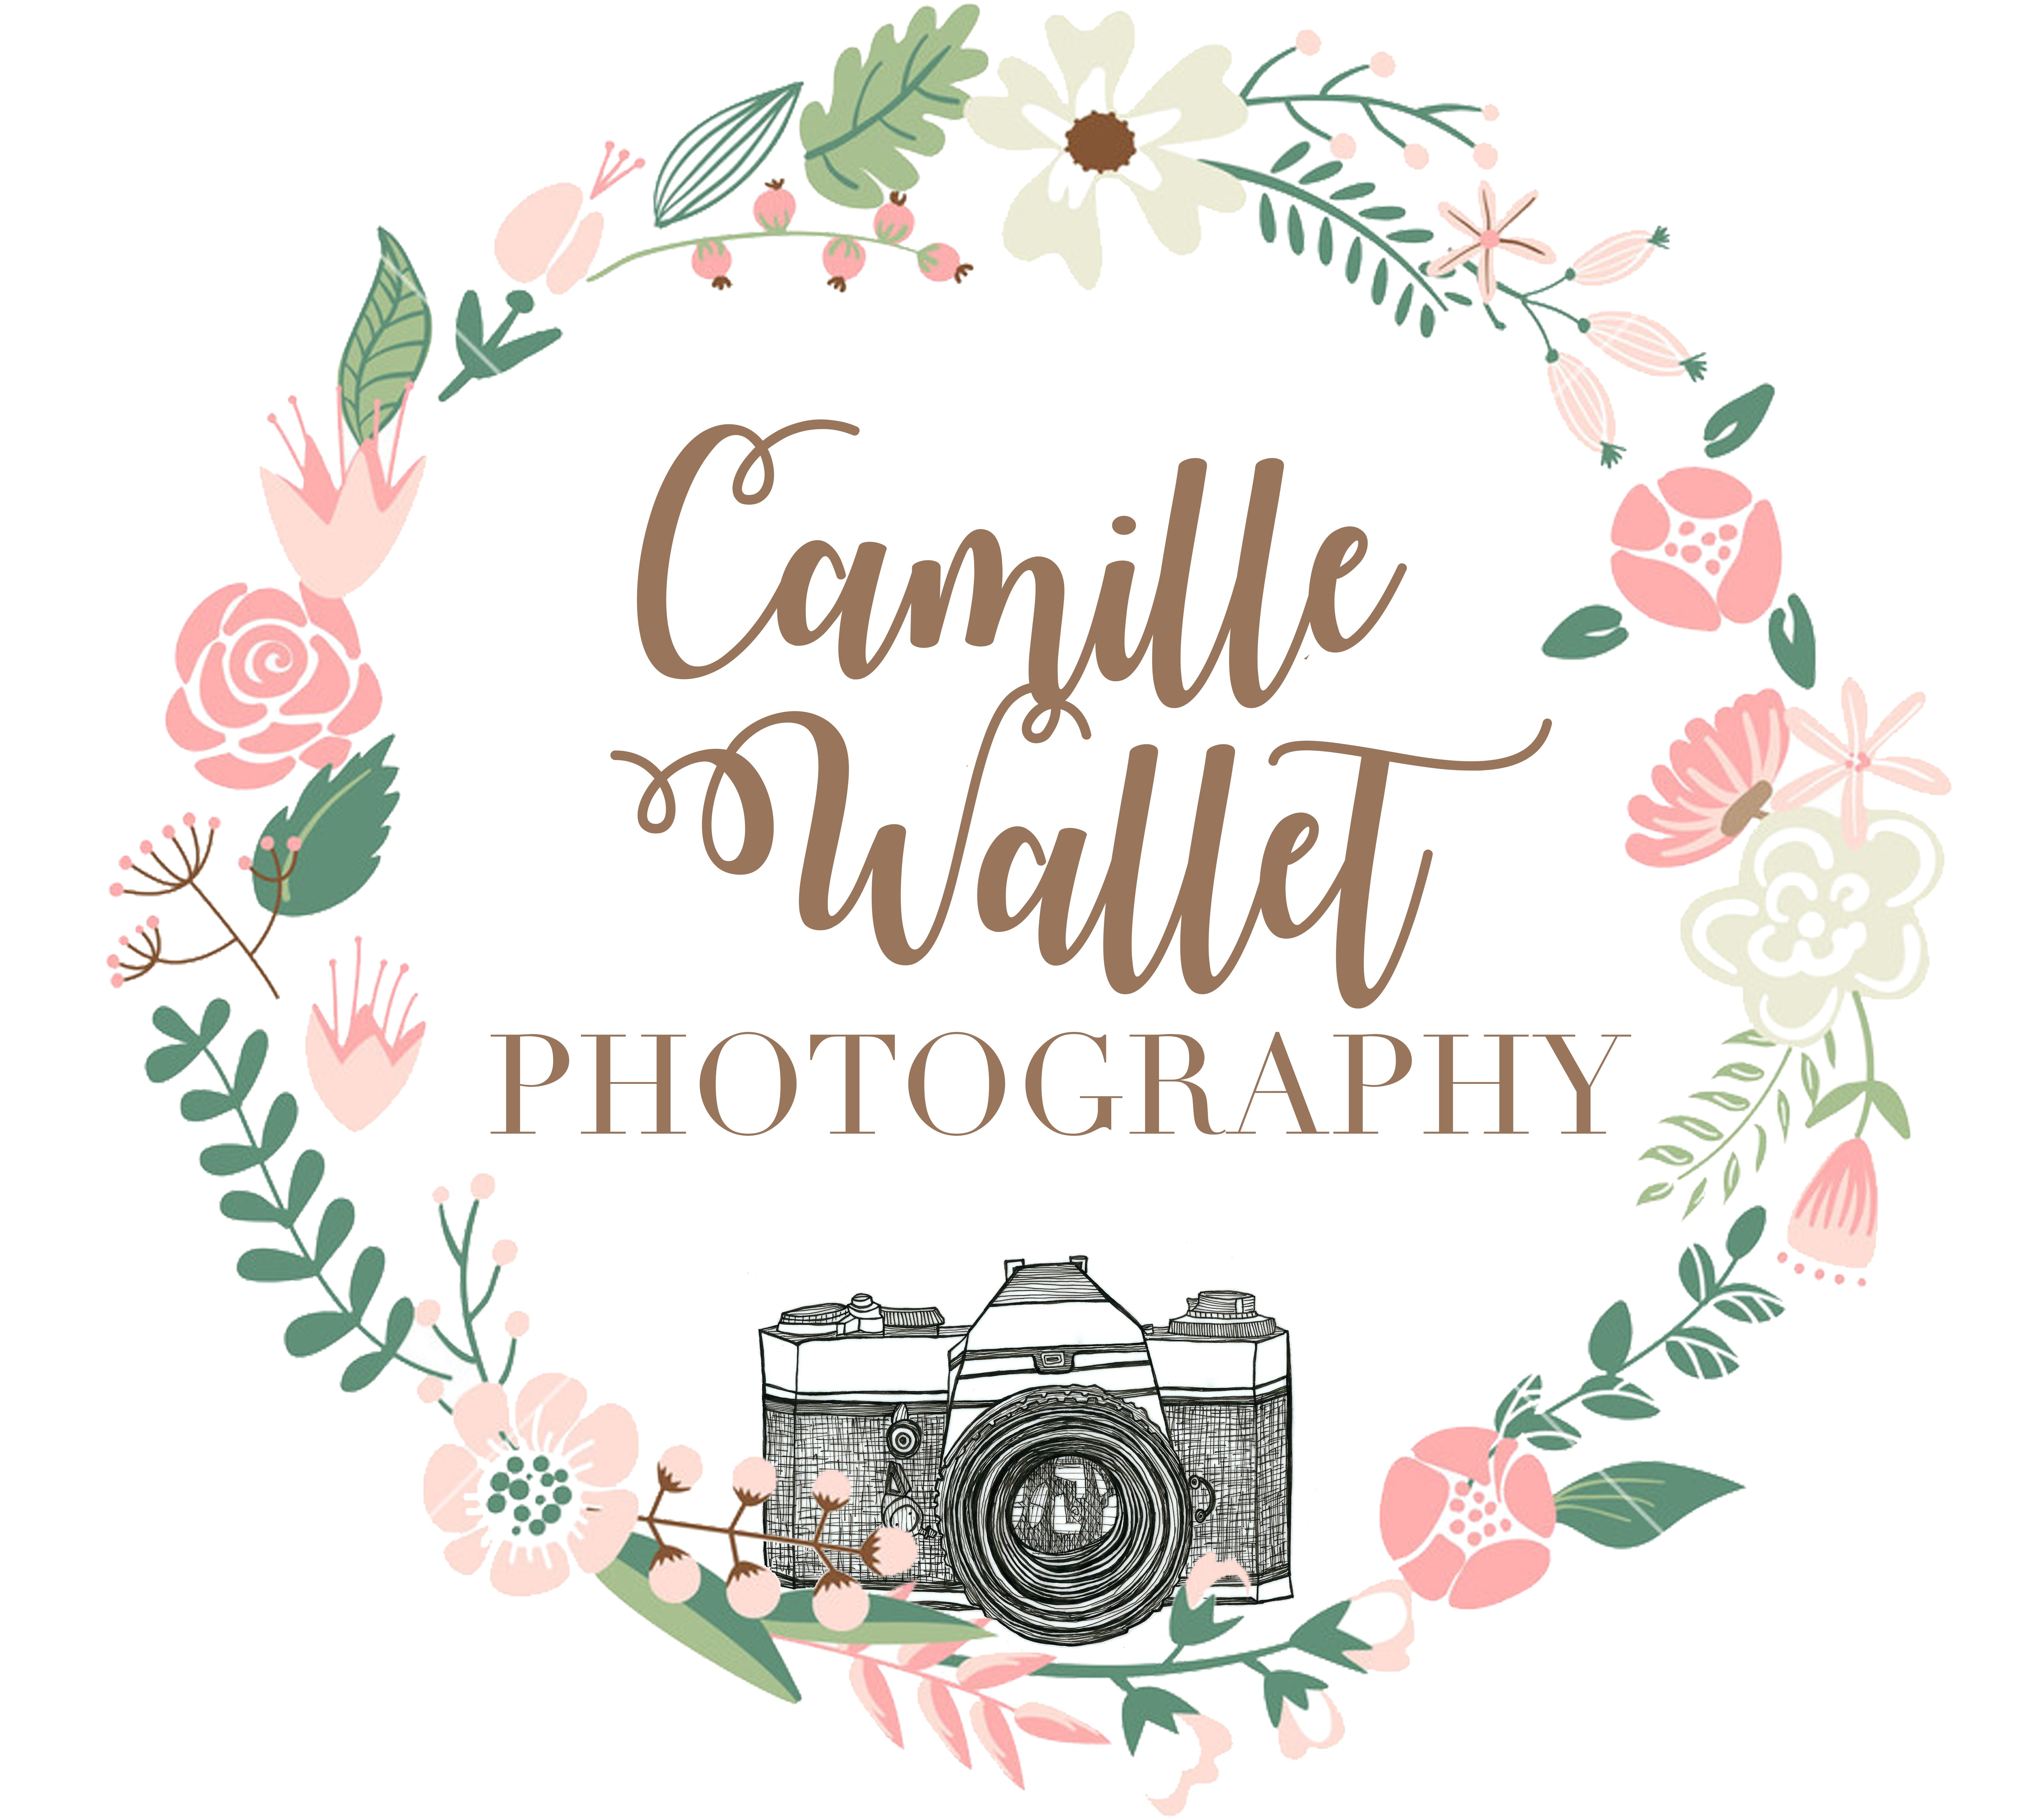 Camille Wallet Photography